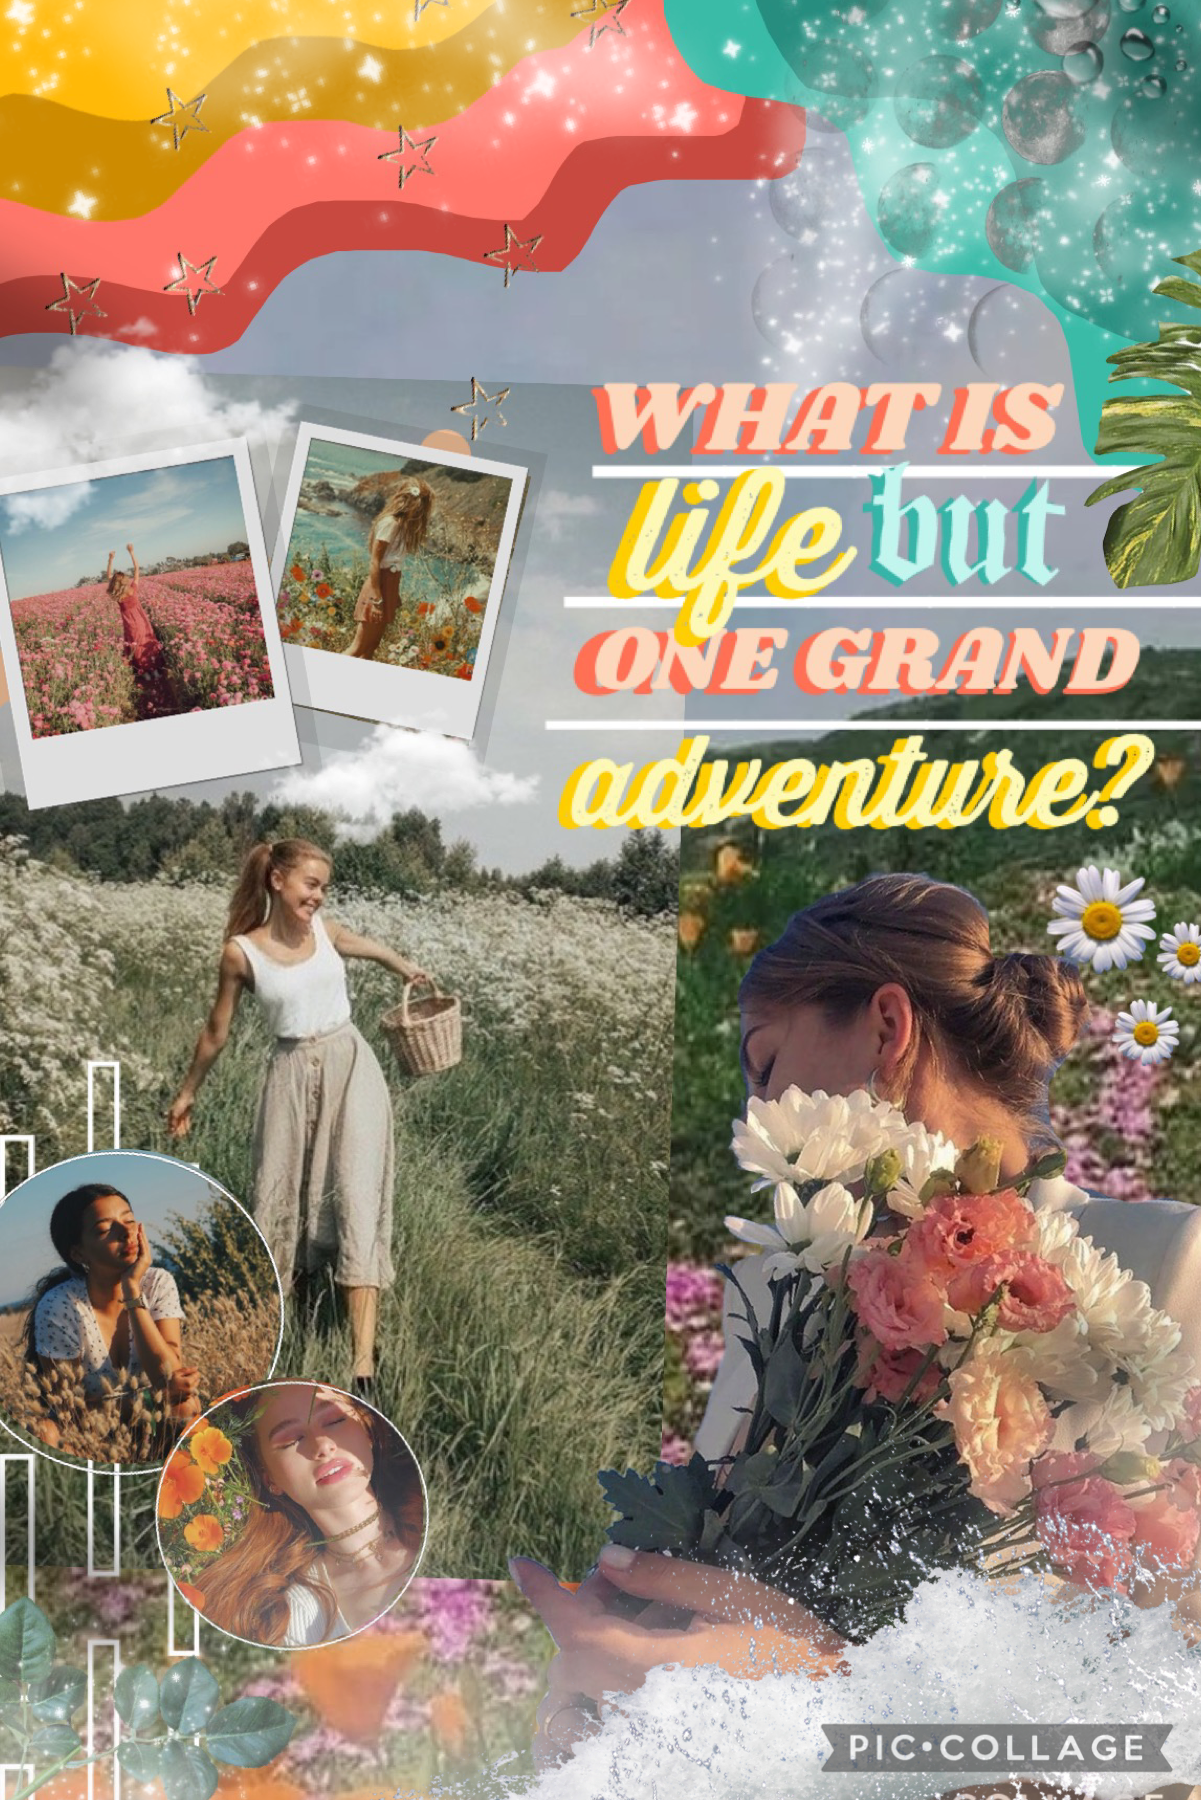 hiiii🌼I was bored so I made this lol, this collage is very much inspired by two of my favorites, @meandmeonly and @CrashingWaters 💕